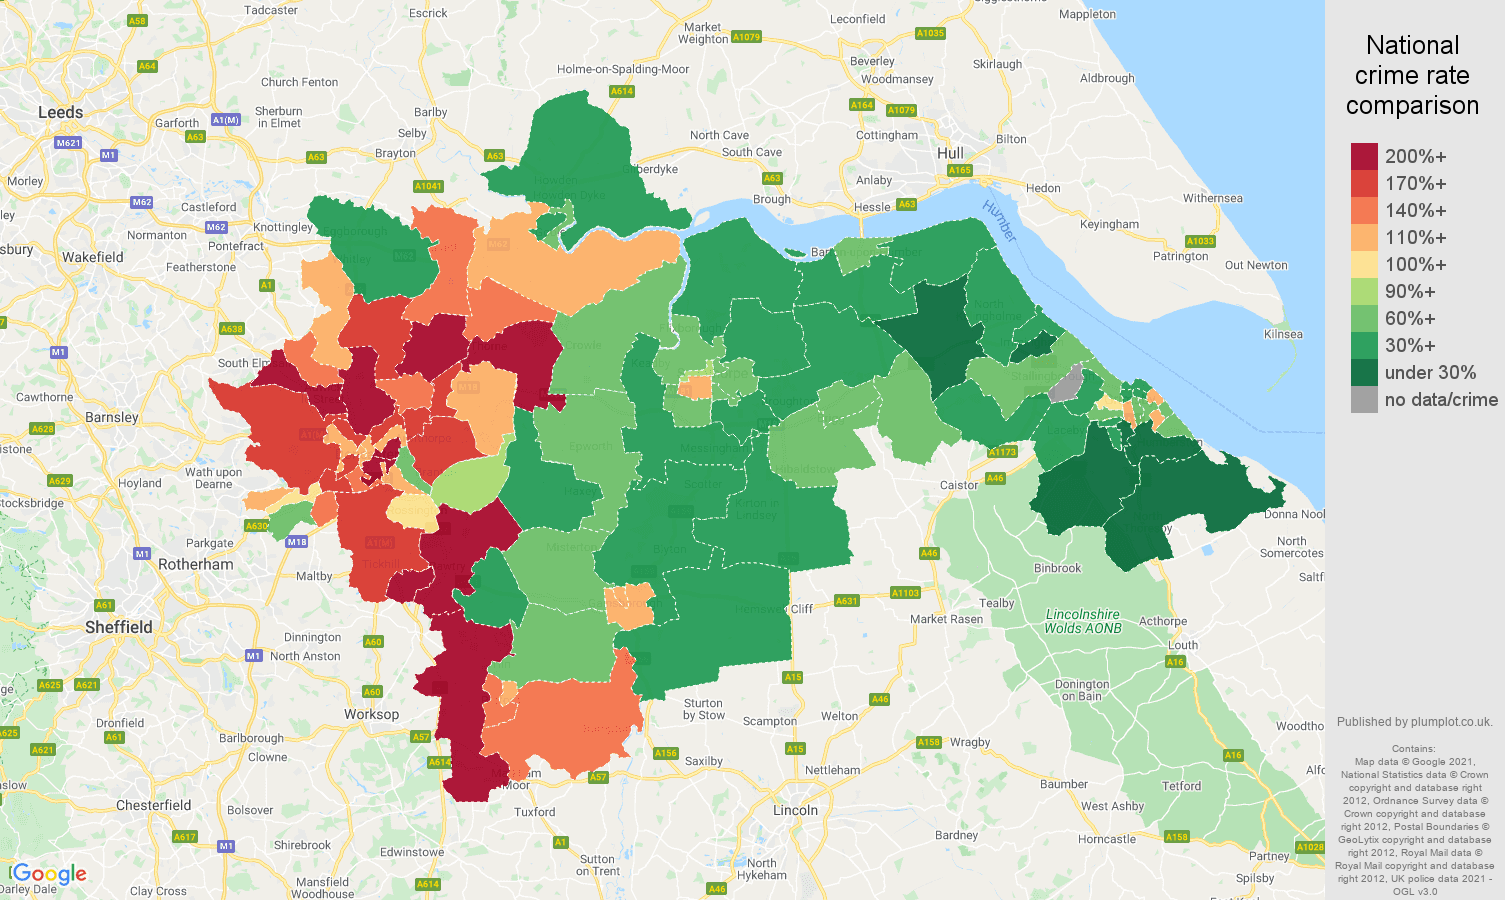 Doncaster vehicle crime rate comparison map